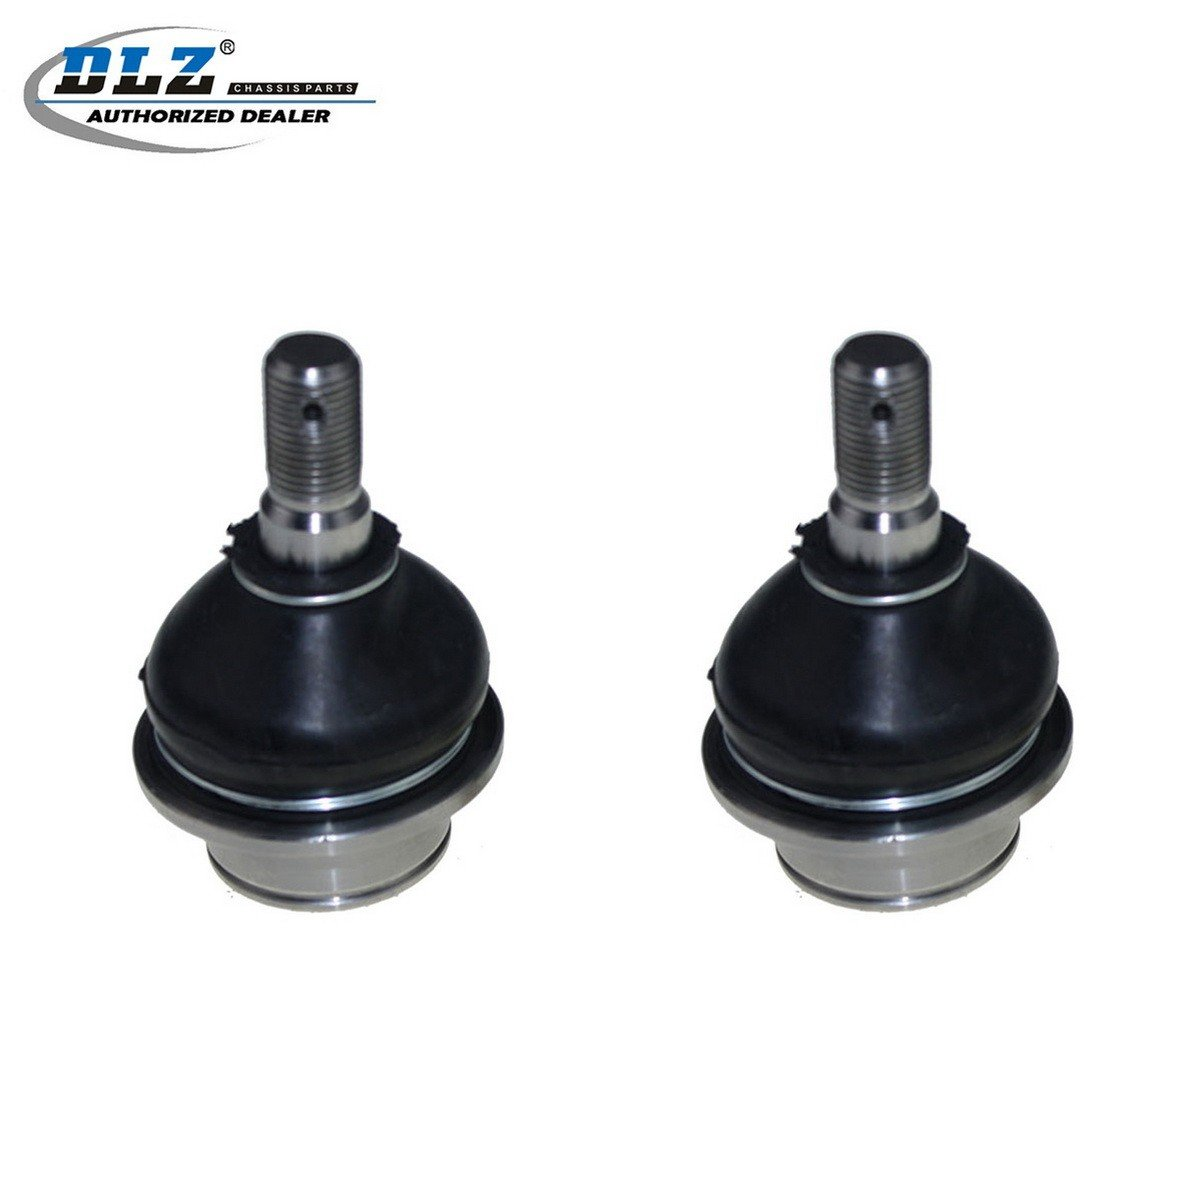 DLZ 2 Pcs Front Suspension Kit-2 Front Lower Ball Joint K8695T Compatible with 1998 1999 2000 2001 Ford Ranger Ford Explorer Mazda B2500 B3000 B4000 Mercury Mountaineer